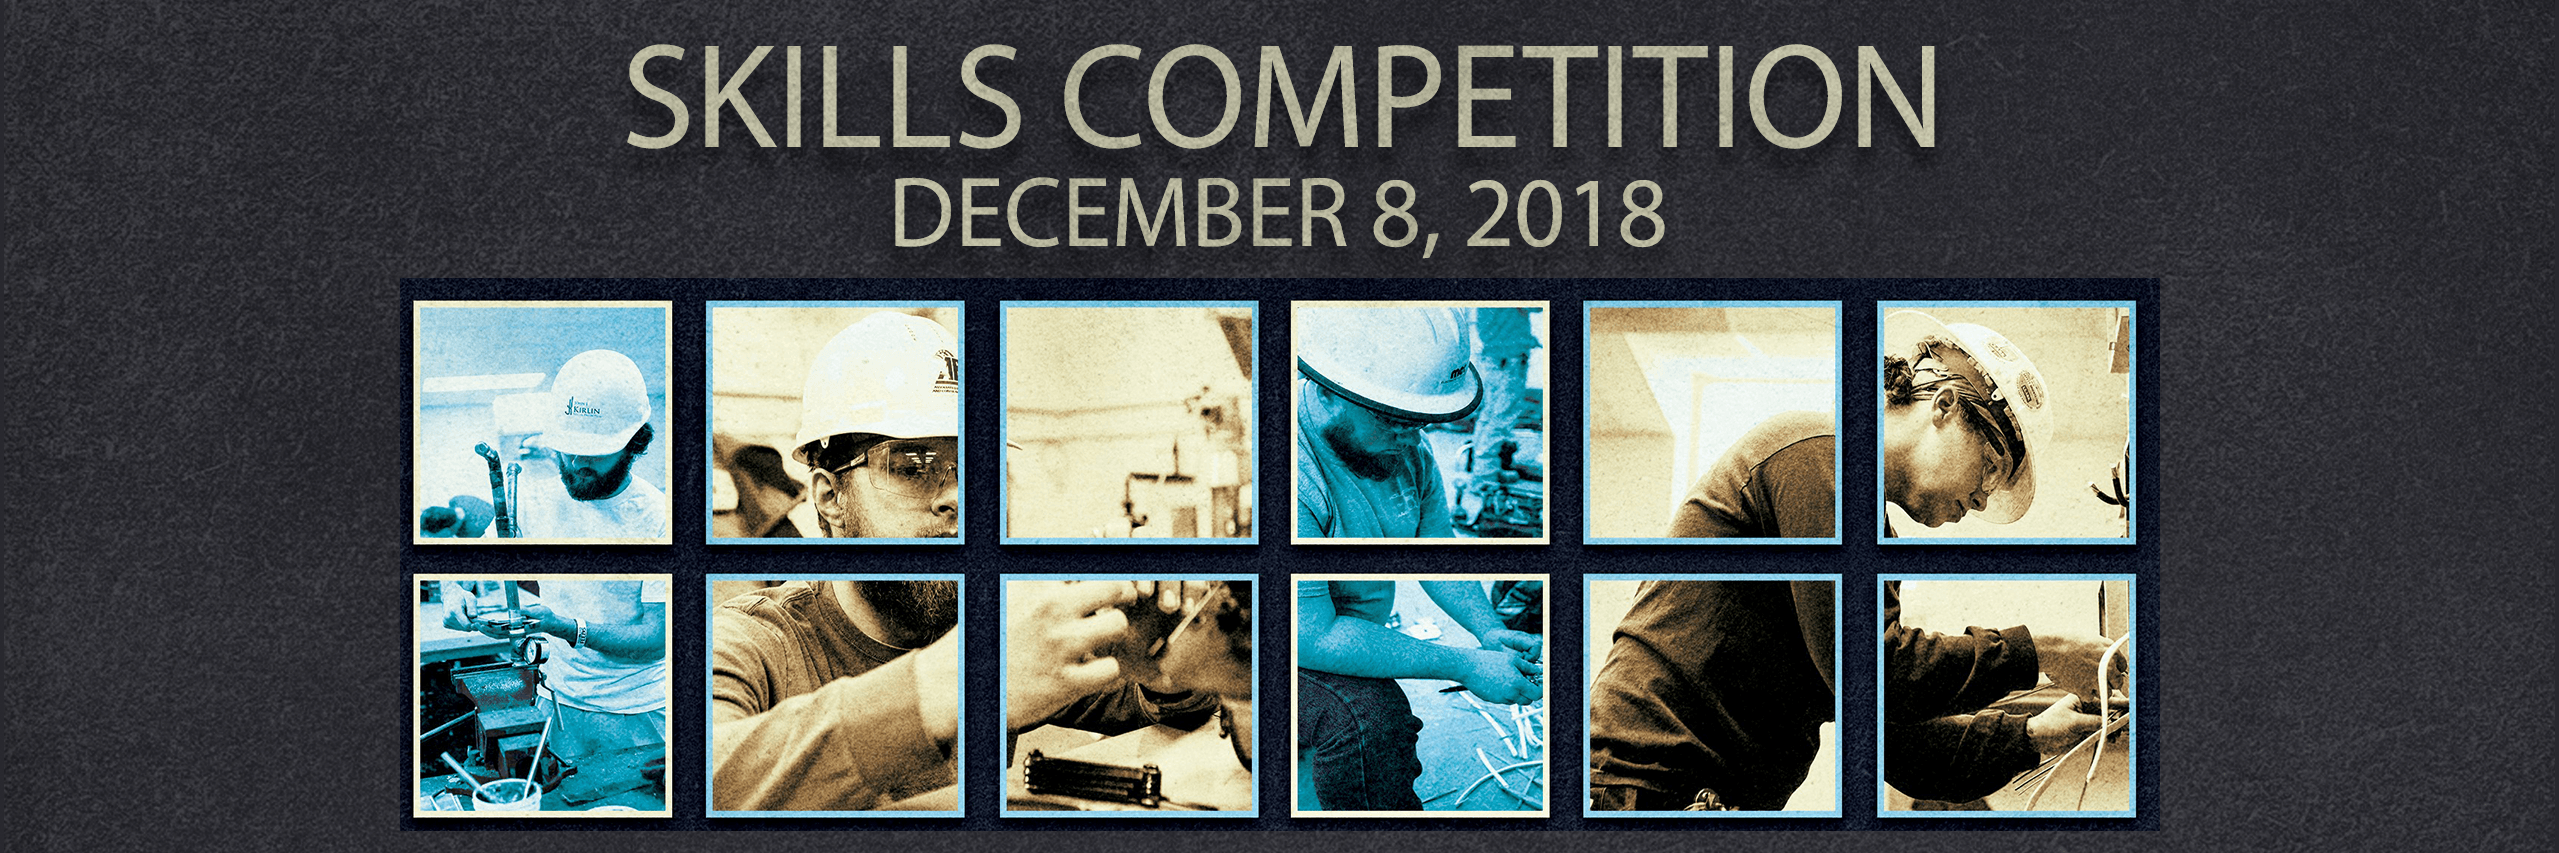 Skills Competition_20181208_Website Banner